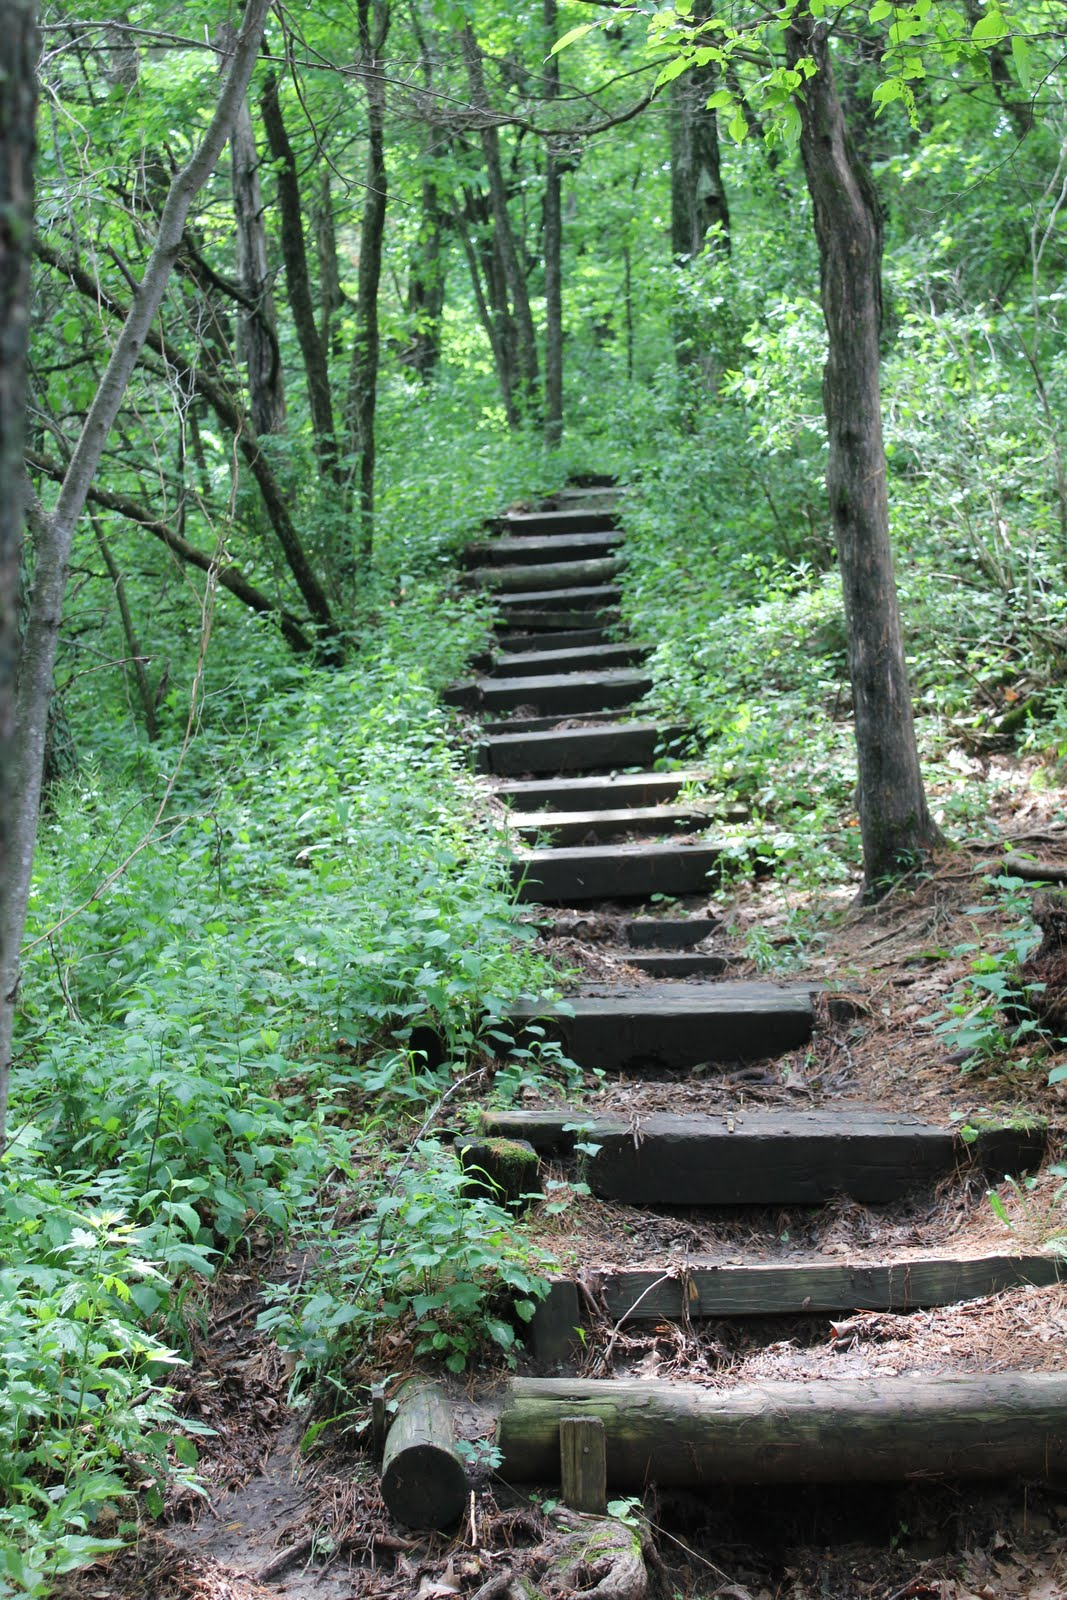 training wheels not included governor dodge state park wisconsin. Cars Review. Best American Auto & Cars Review